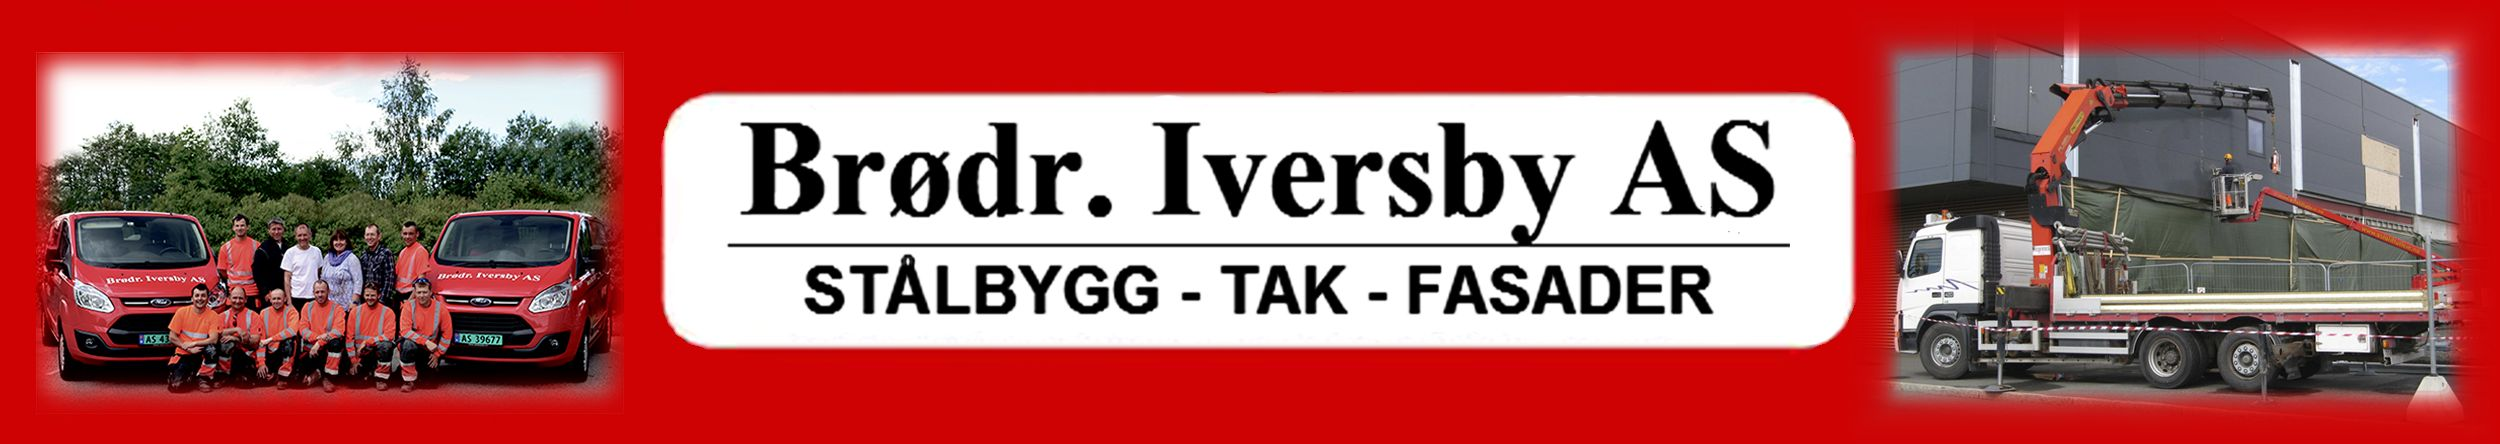 Br�dr. Iversby AS